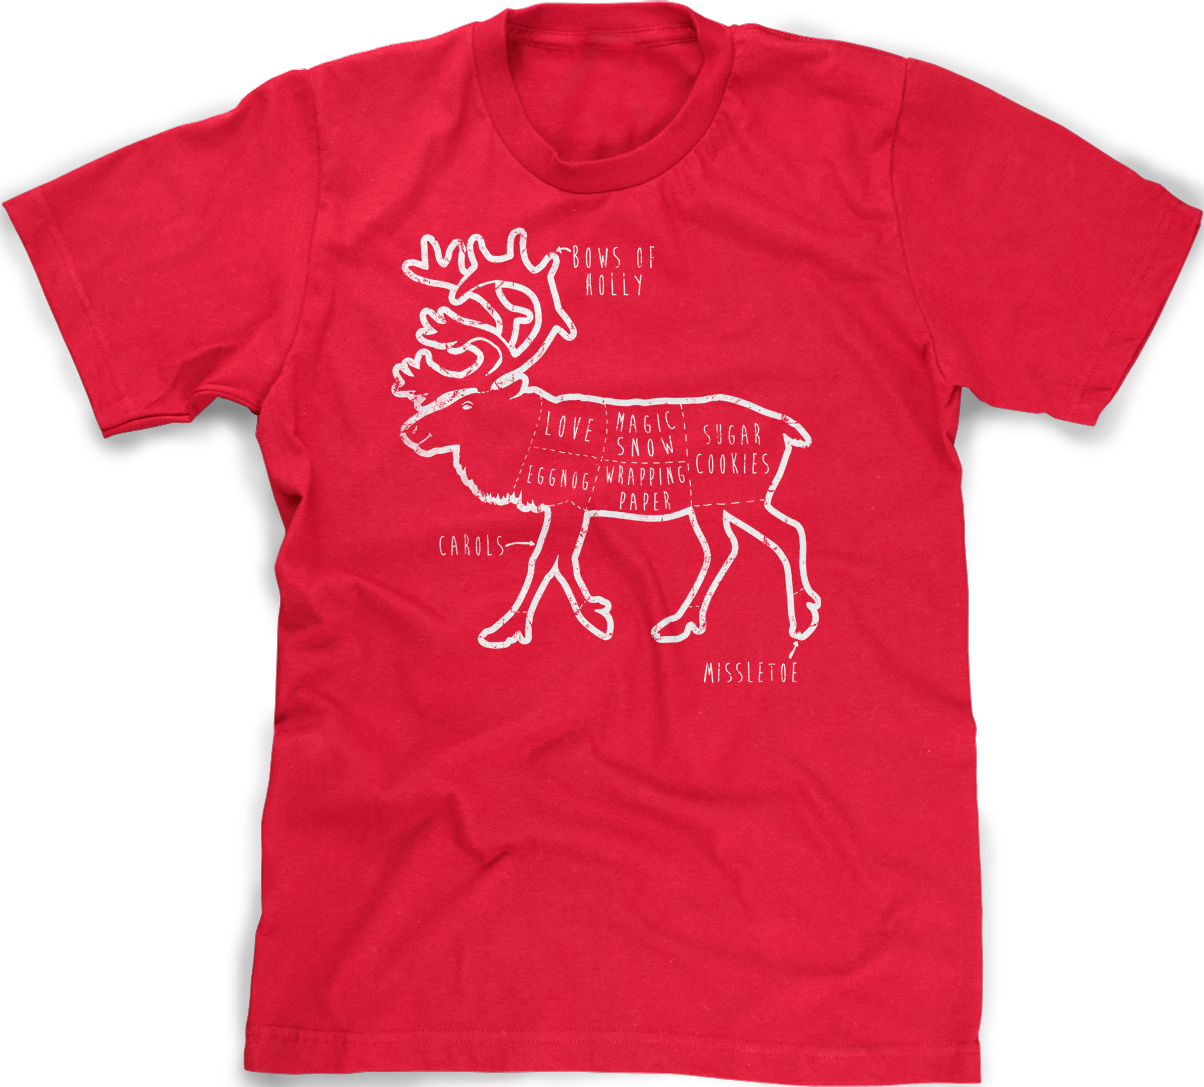 Youth Reindeer Parts T Shirt Funny Christmas Shirt Xmas Tee for Kids ...